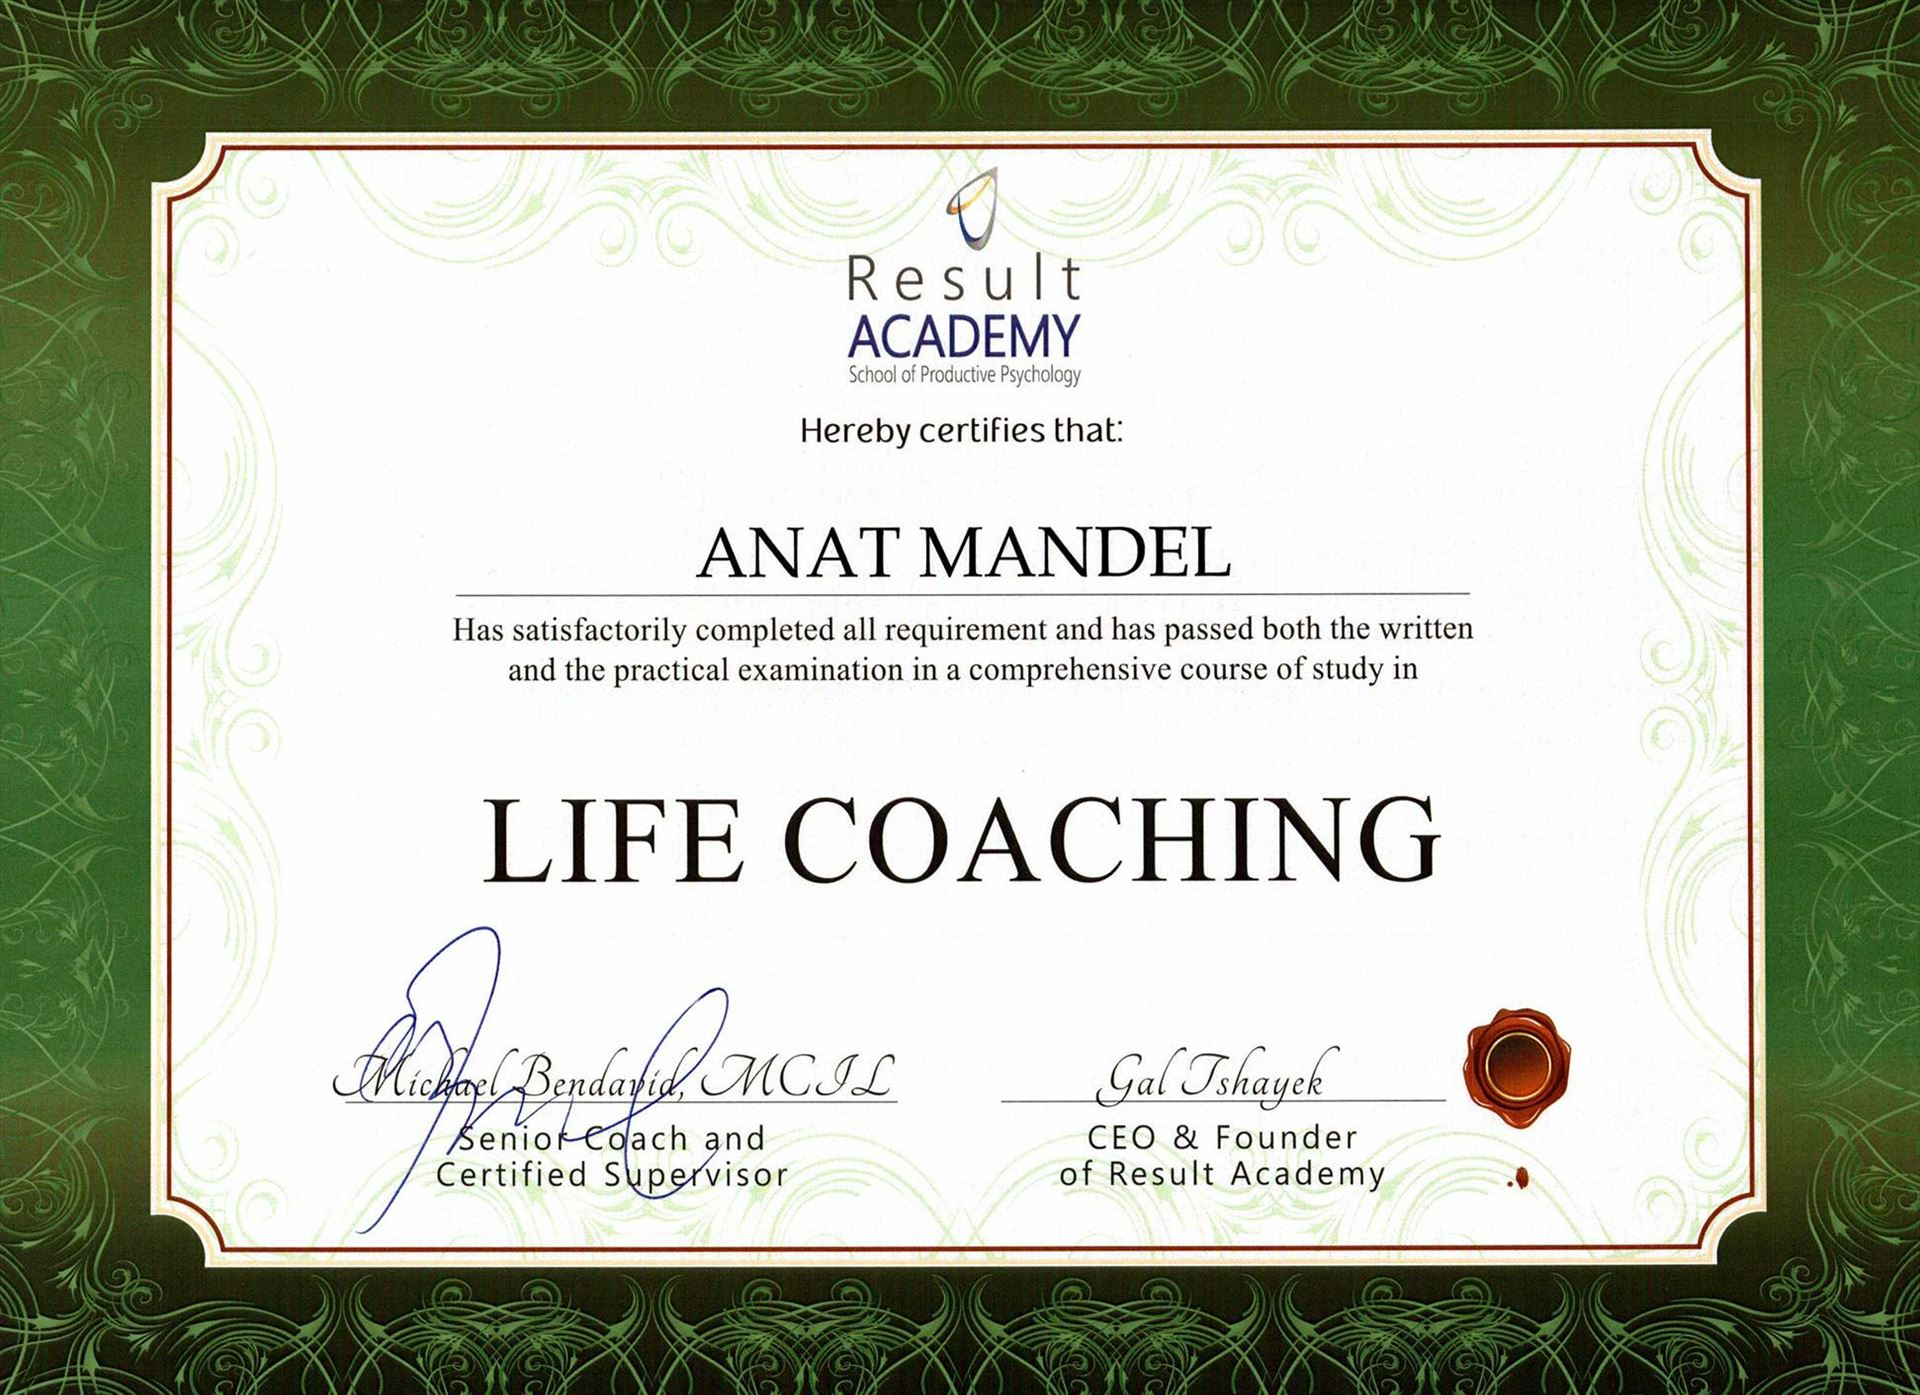 https://www.anatmandel.co.il/Uploads/ראשי/coachingcertificate.jpg